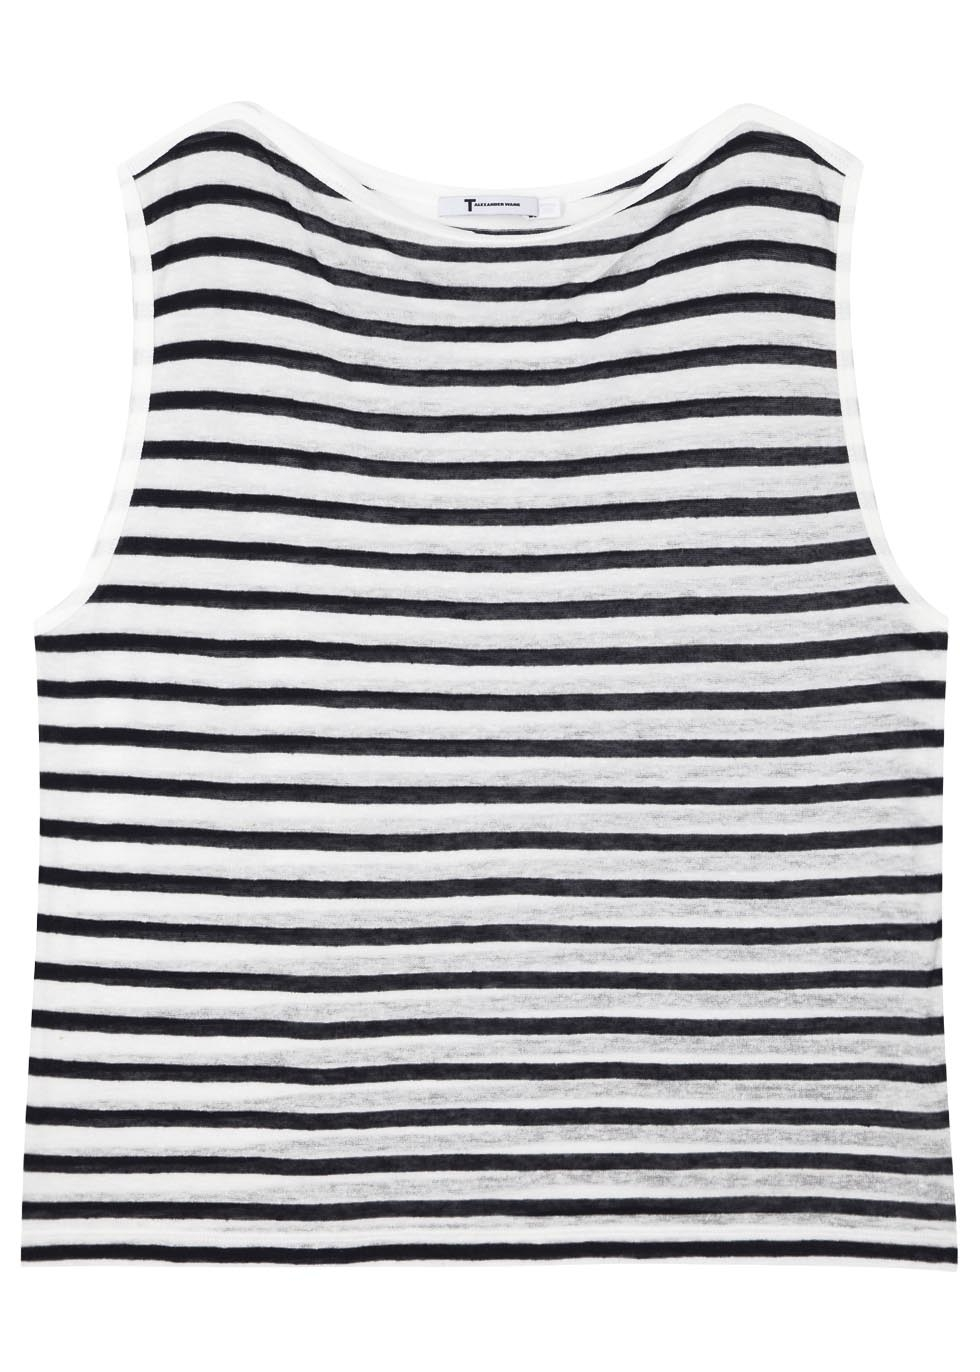 1b2e66ad9bdfb2 T By Alexander Wang Striped Fine Knit Sleeveless Top in Black - Lyst